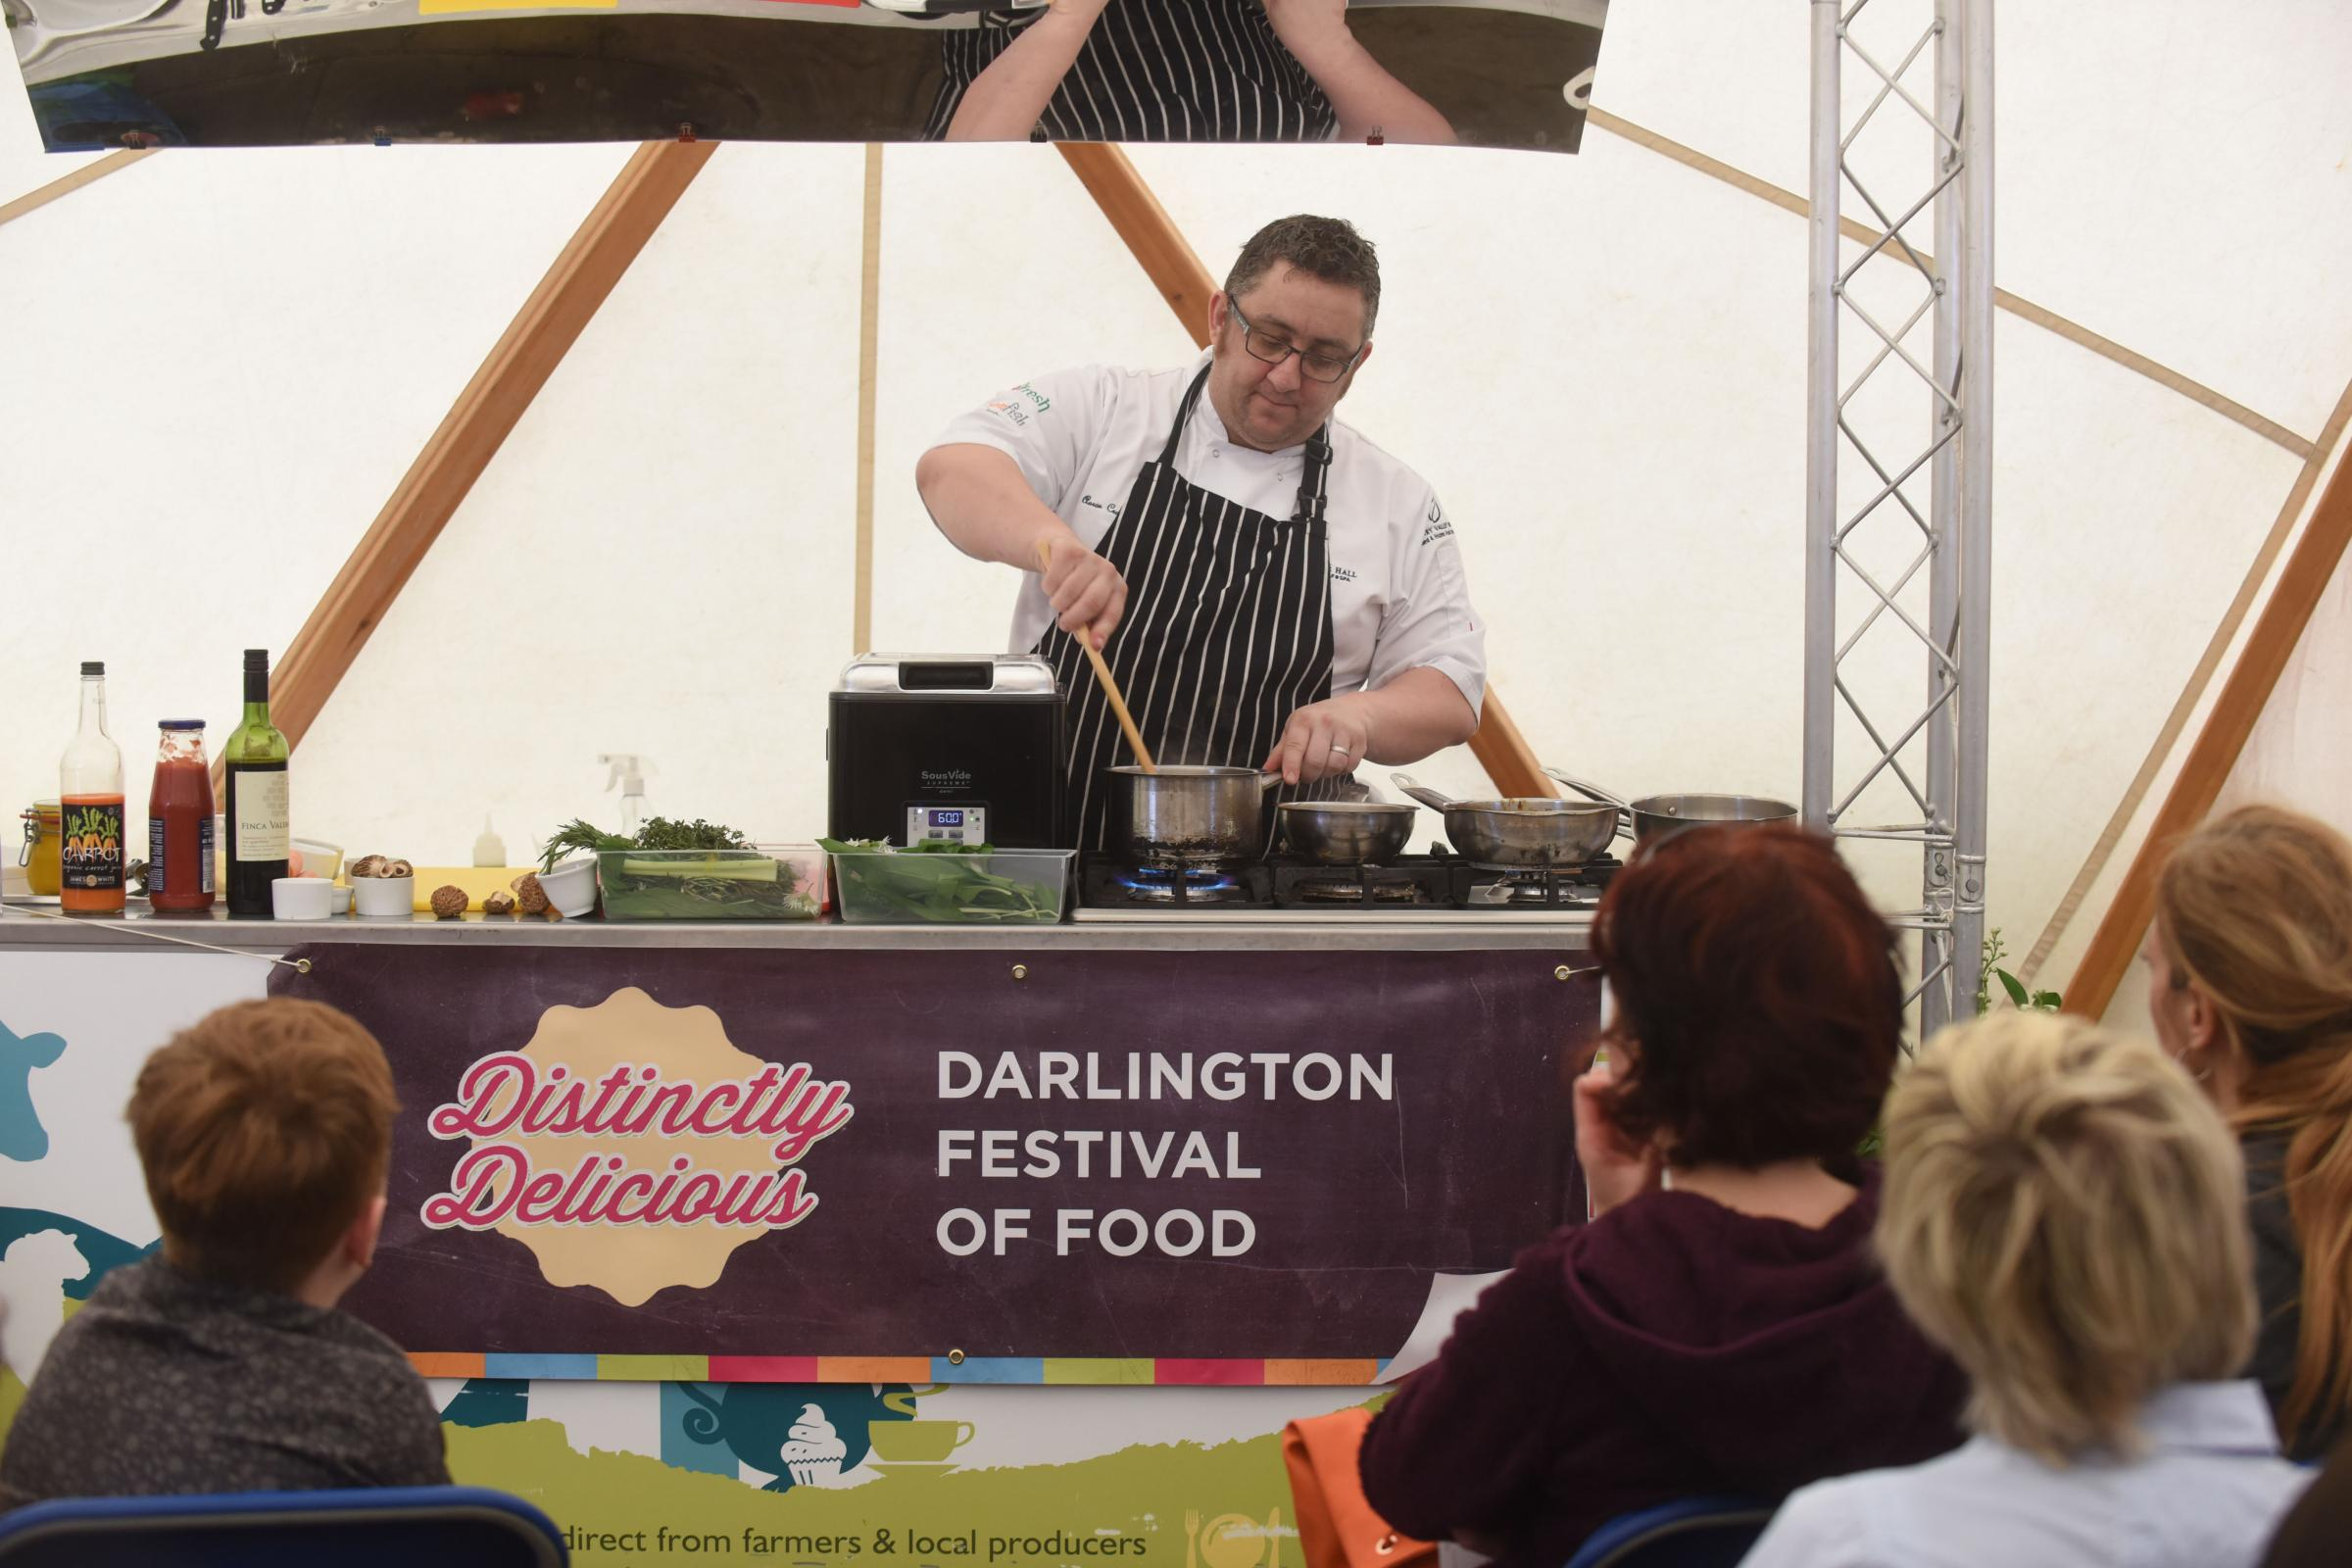 Food Festival: Darlington market place this weekend